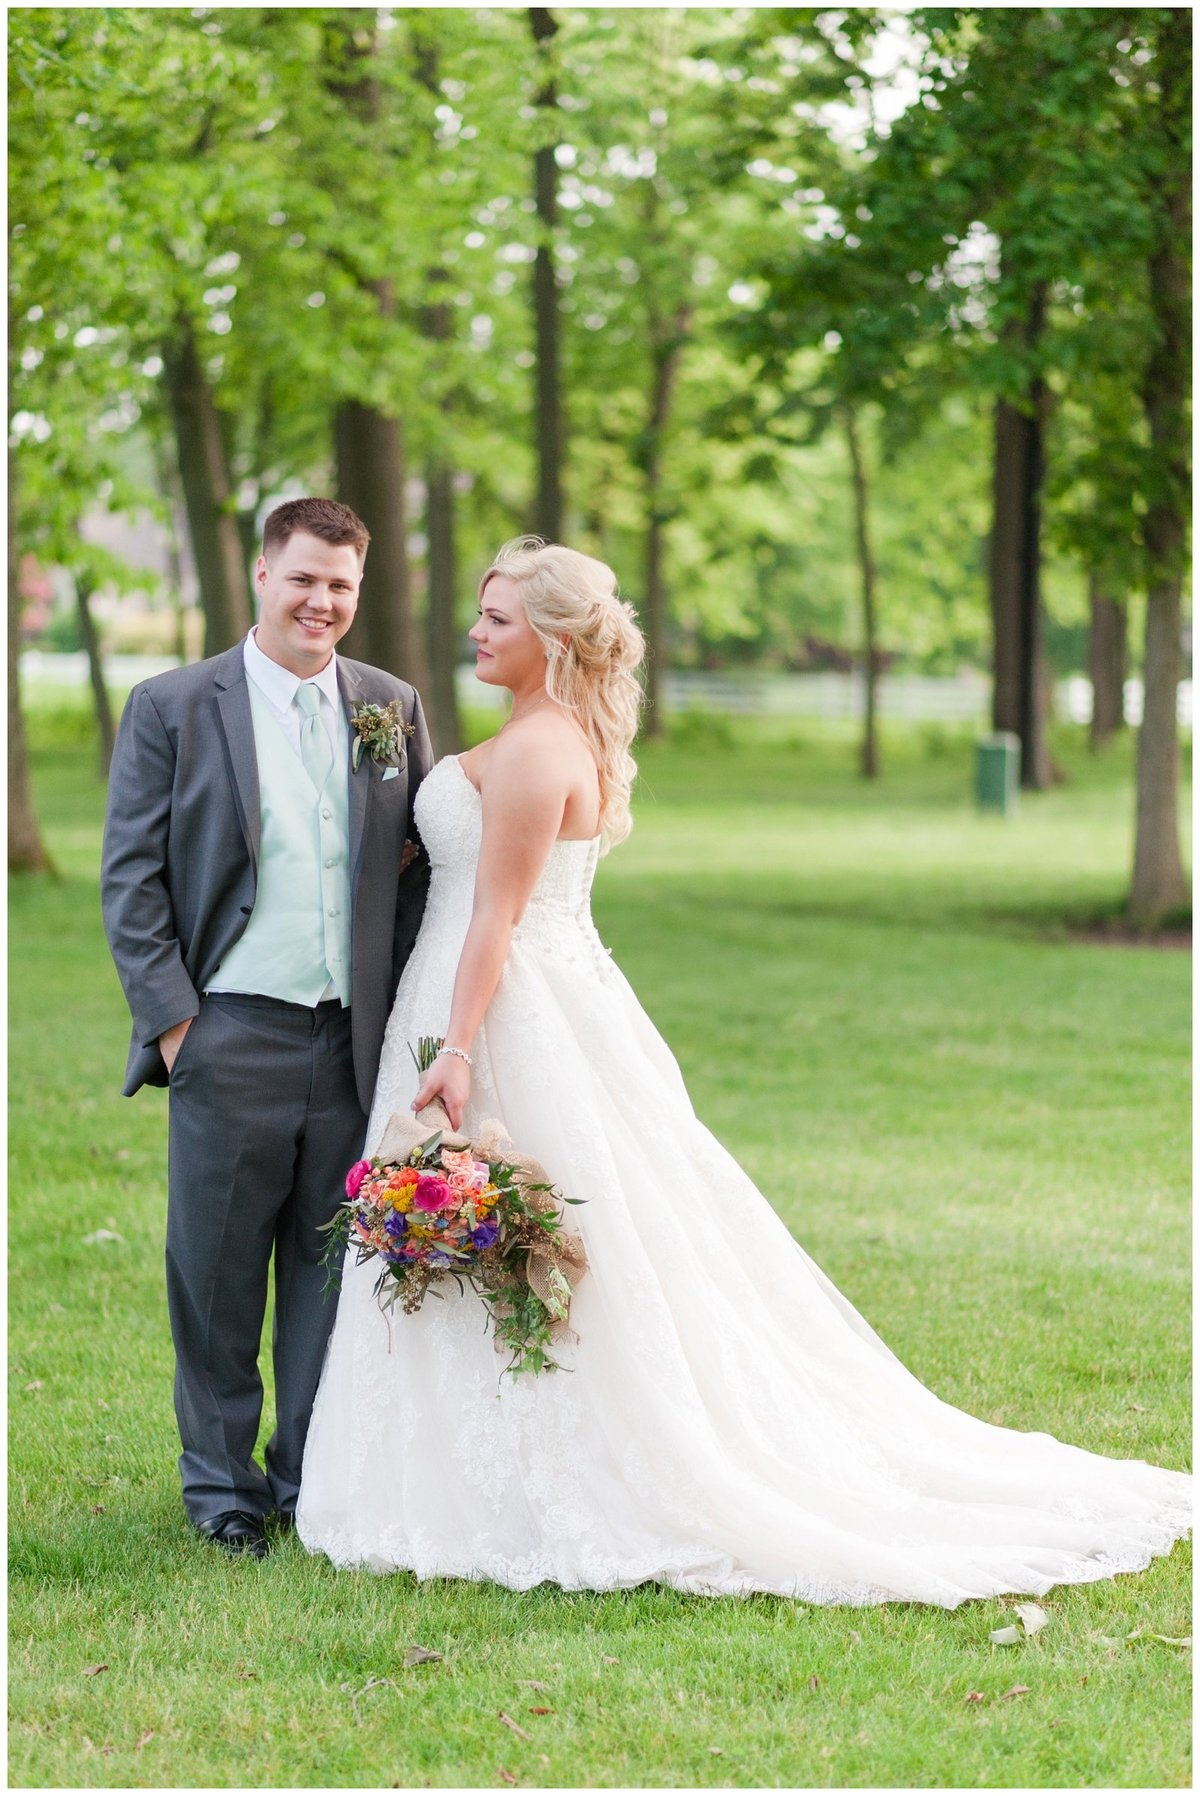 Heritage golf and country club wedding hilliard ohio wedding photos_0047